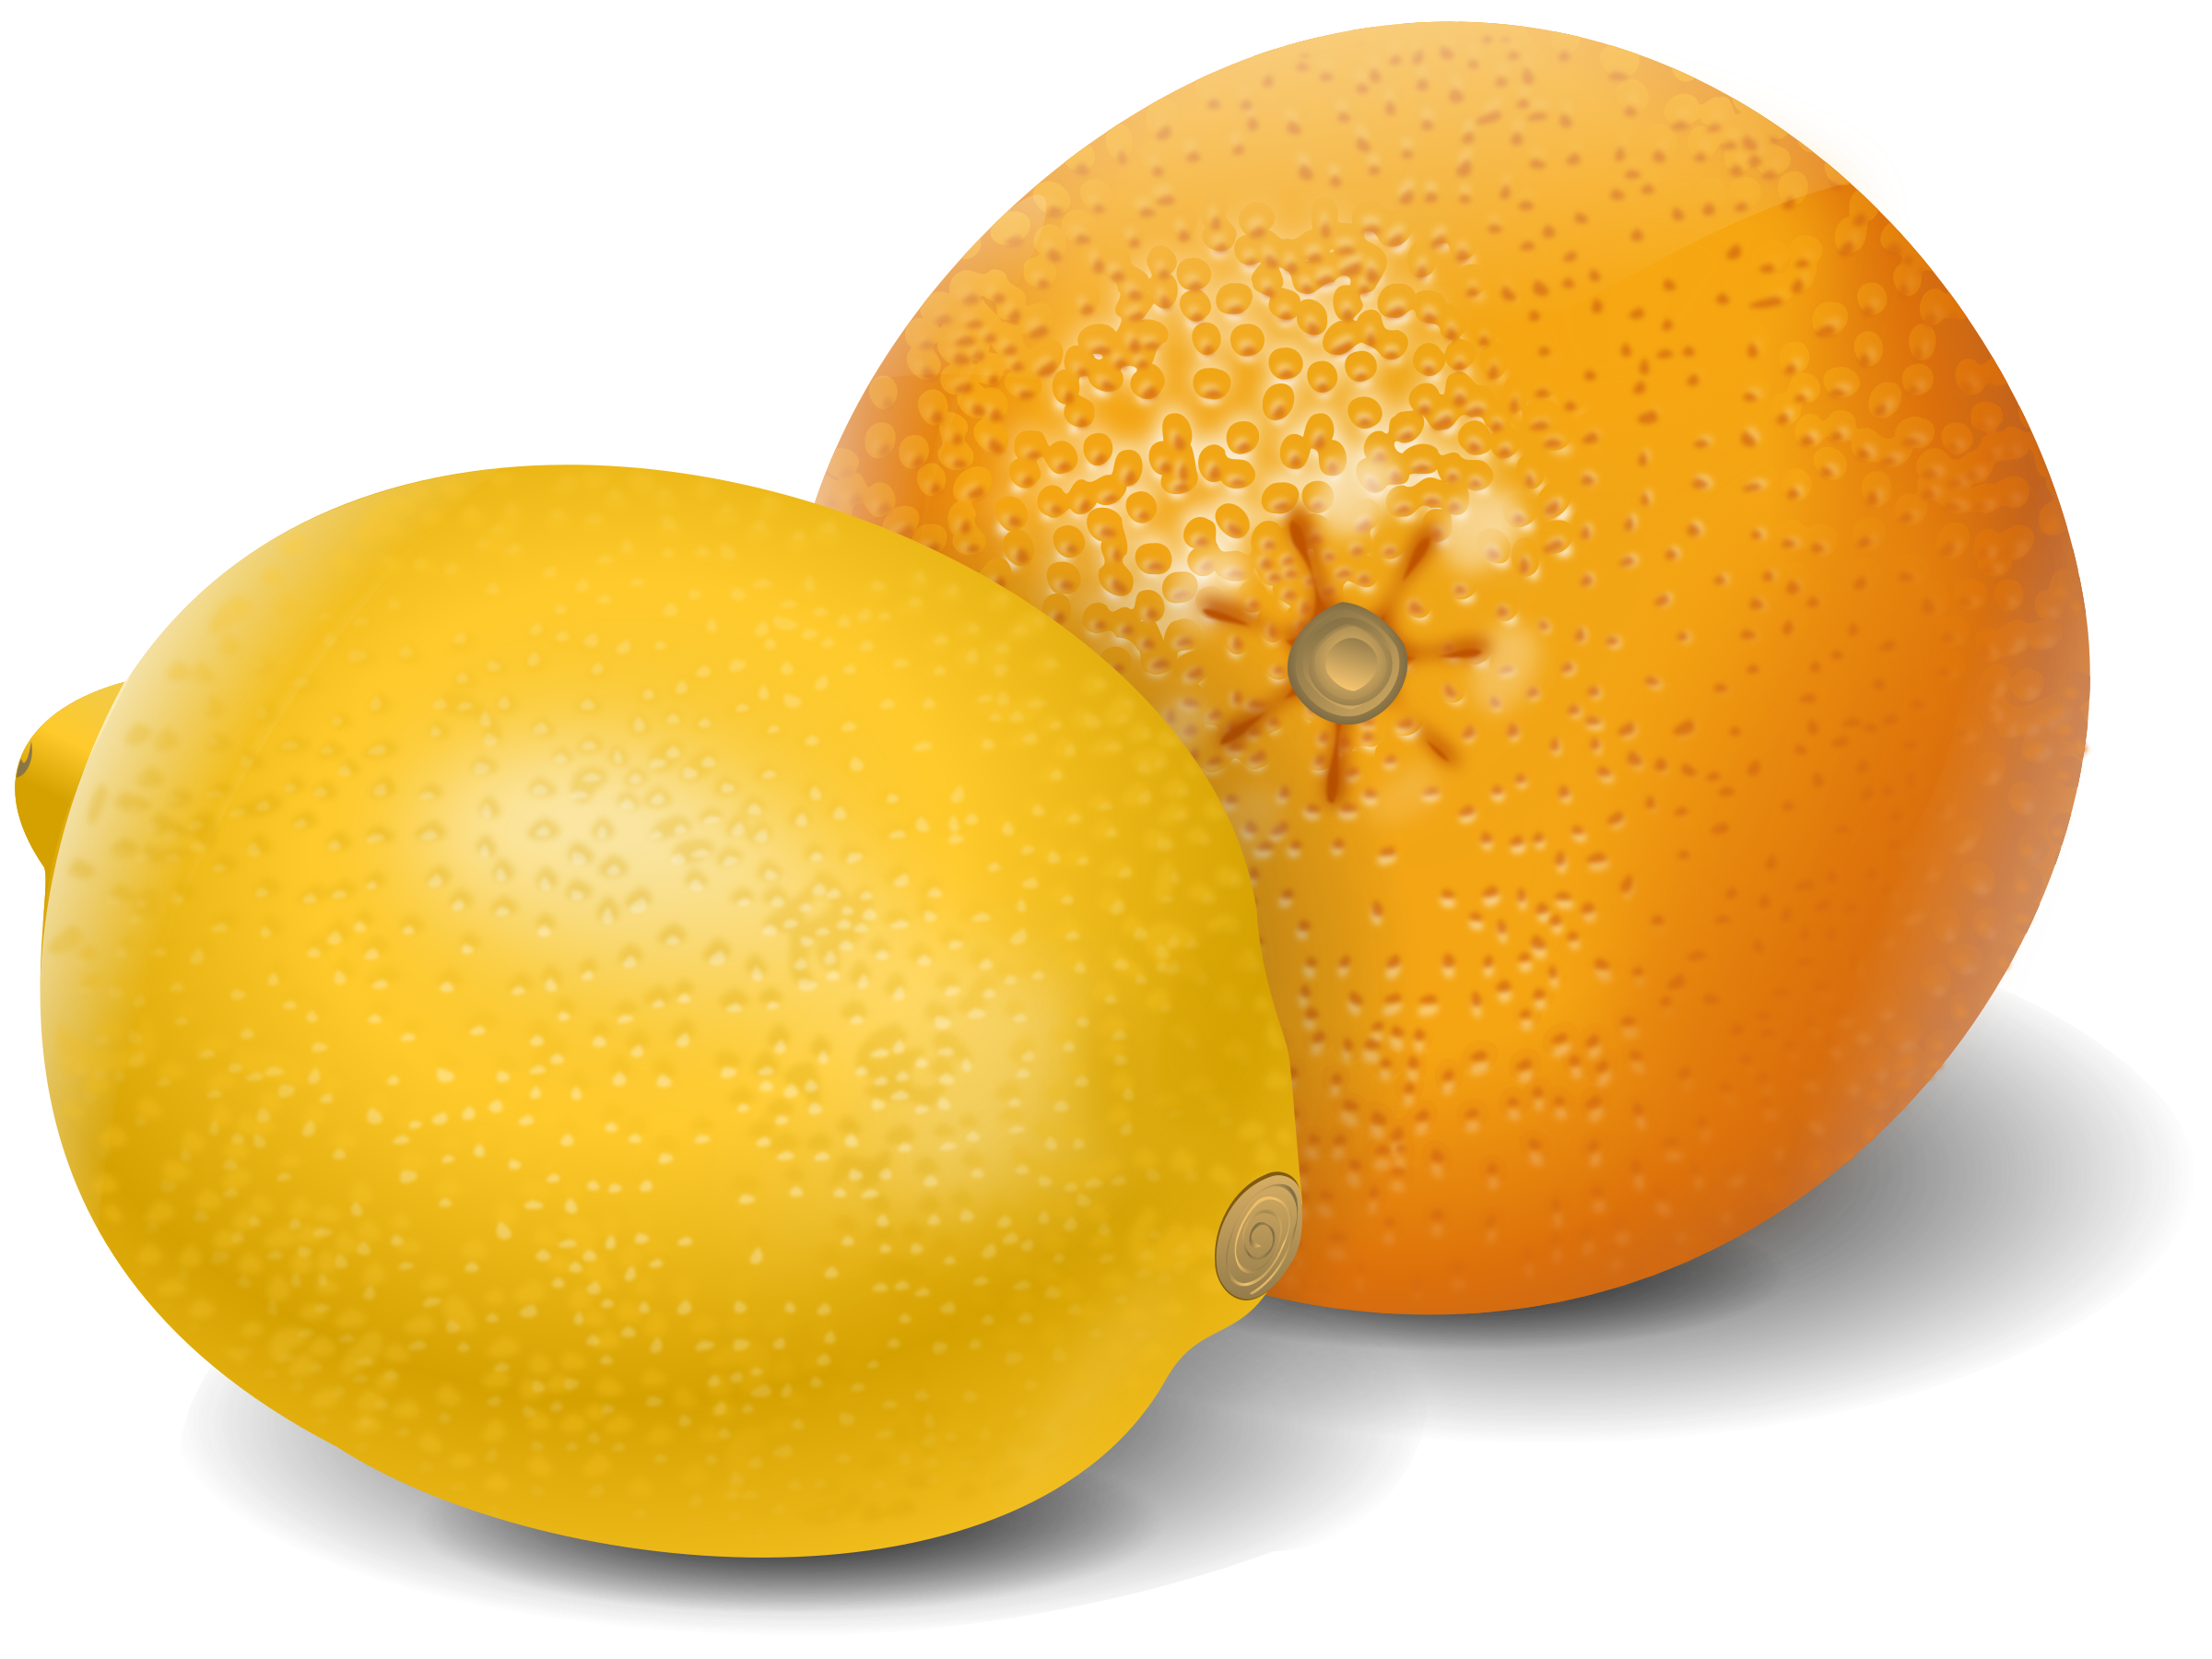 Citrus clipart orange fruit Orange lemon Clipart lemon fruits